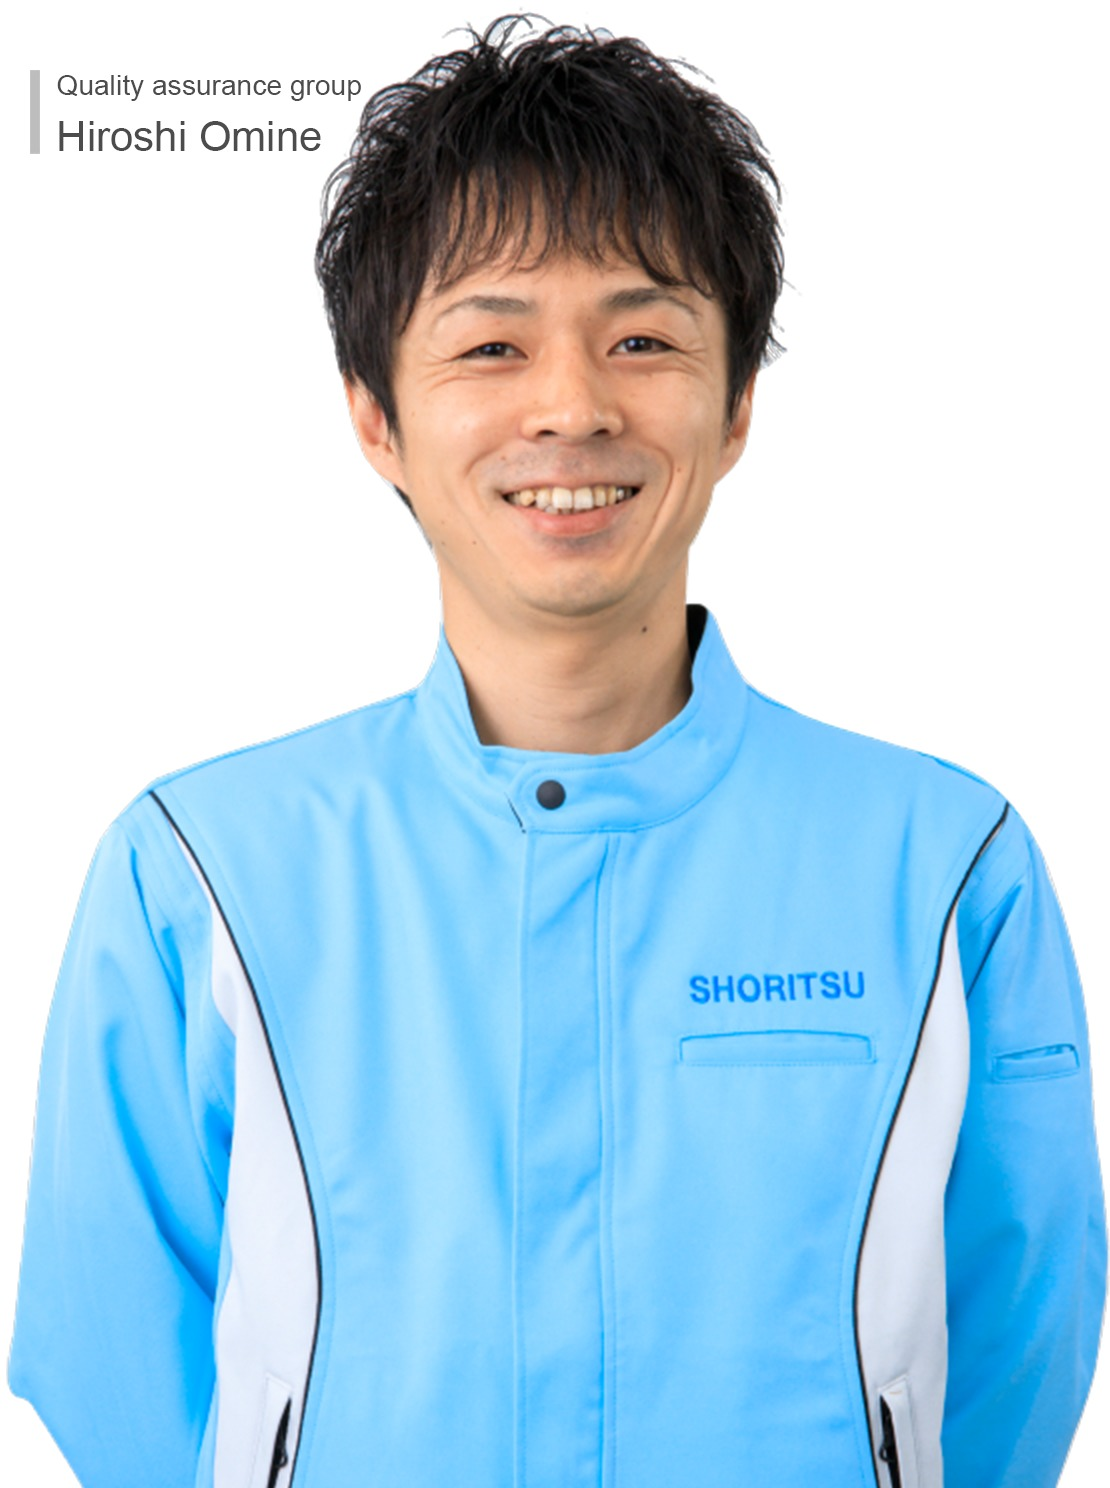 Quality assurance group Hiroshi Omine